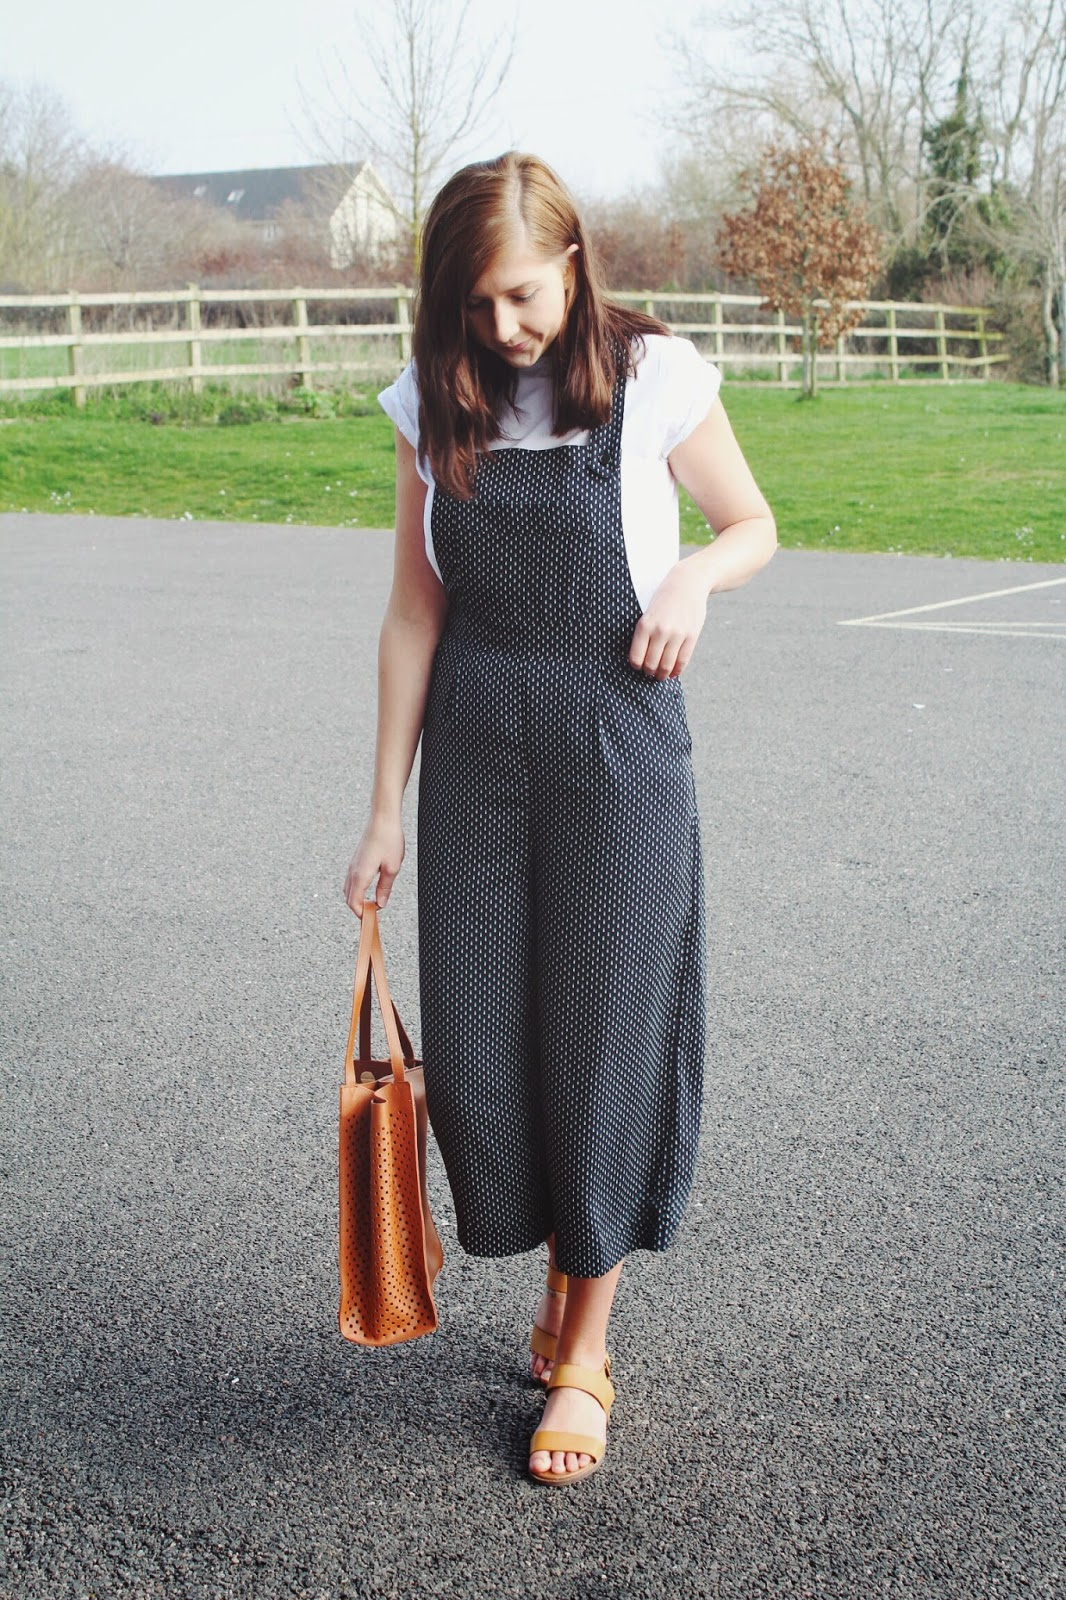 asseenonme, asos, wiw, whatimwearing, lotd, lookoftheday, ootd, outfitoftheday, halcyonvelvet, fbloggers, fblogger, fashionbloggers, fashionblogger, H&M, primark, culottes, dungarees, summerfashion